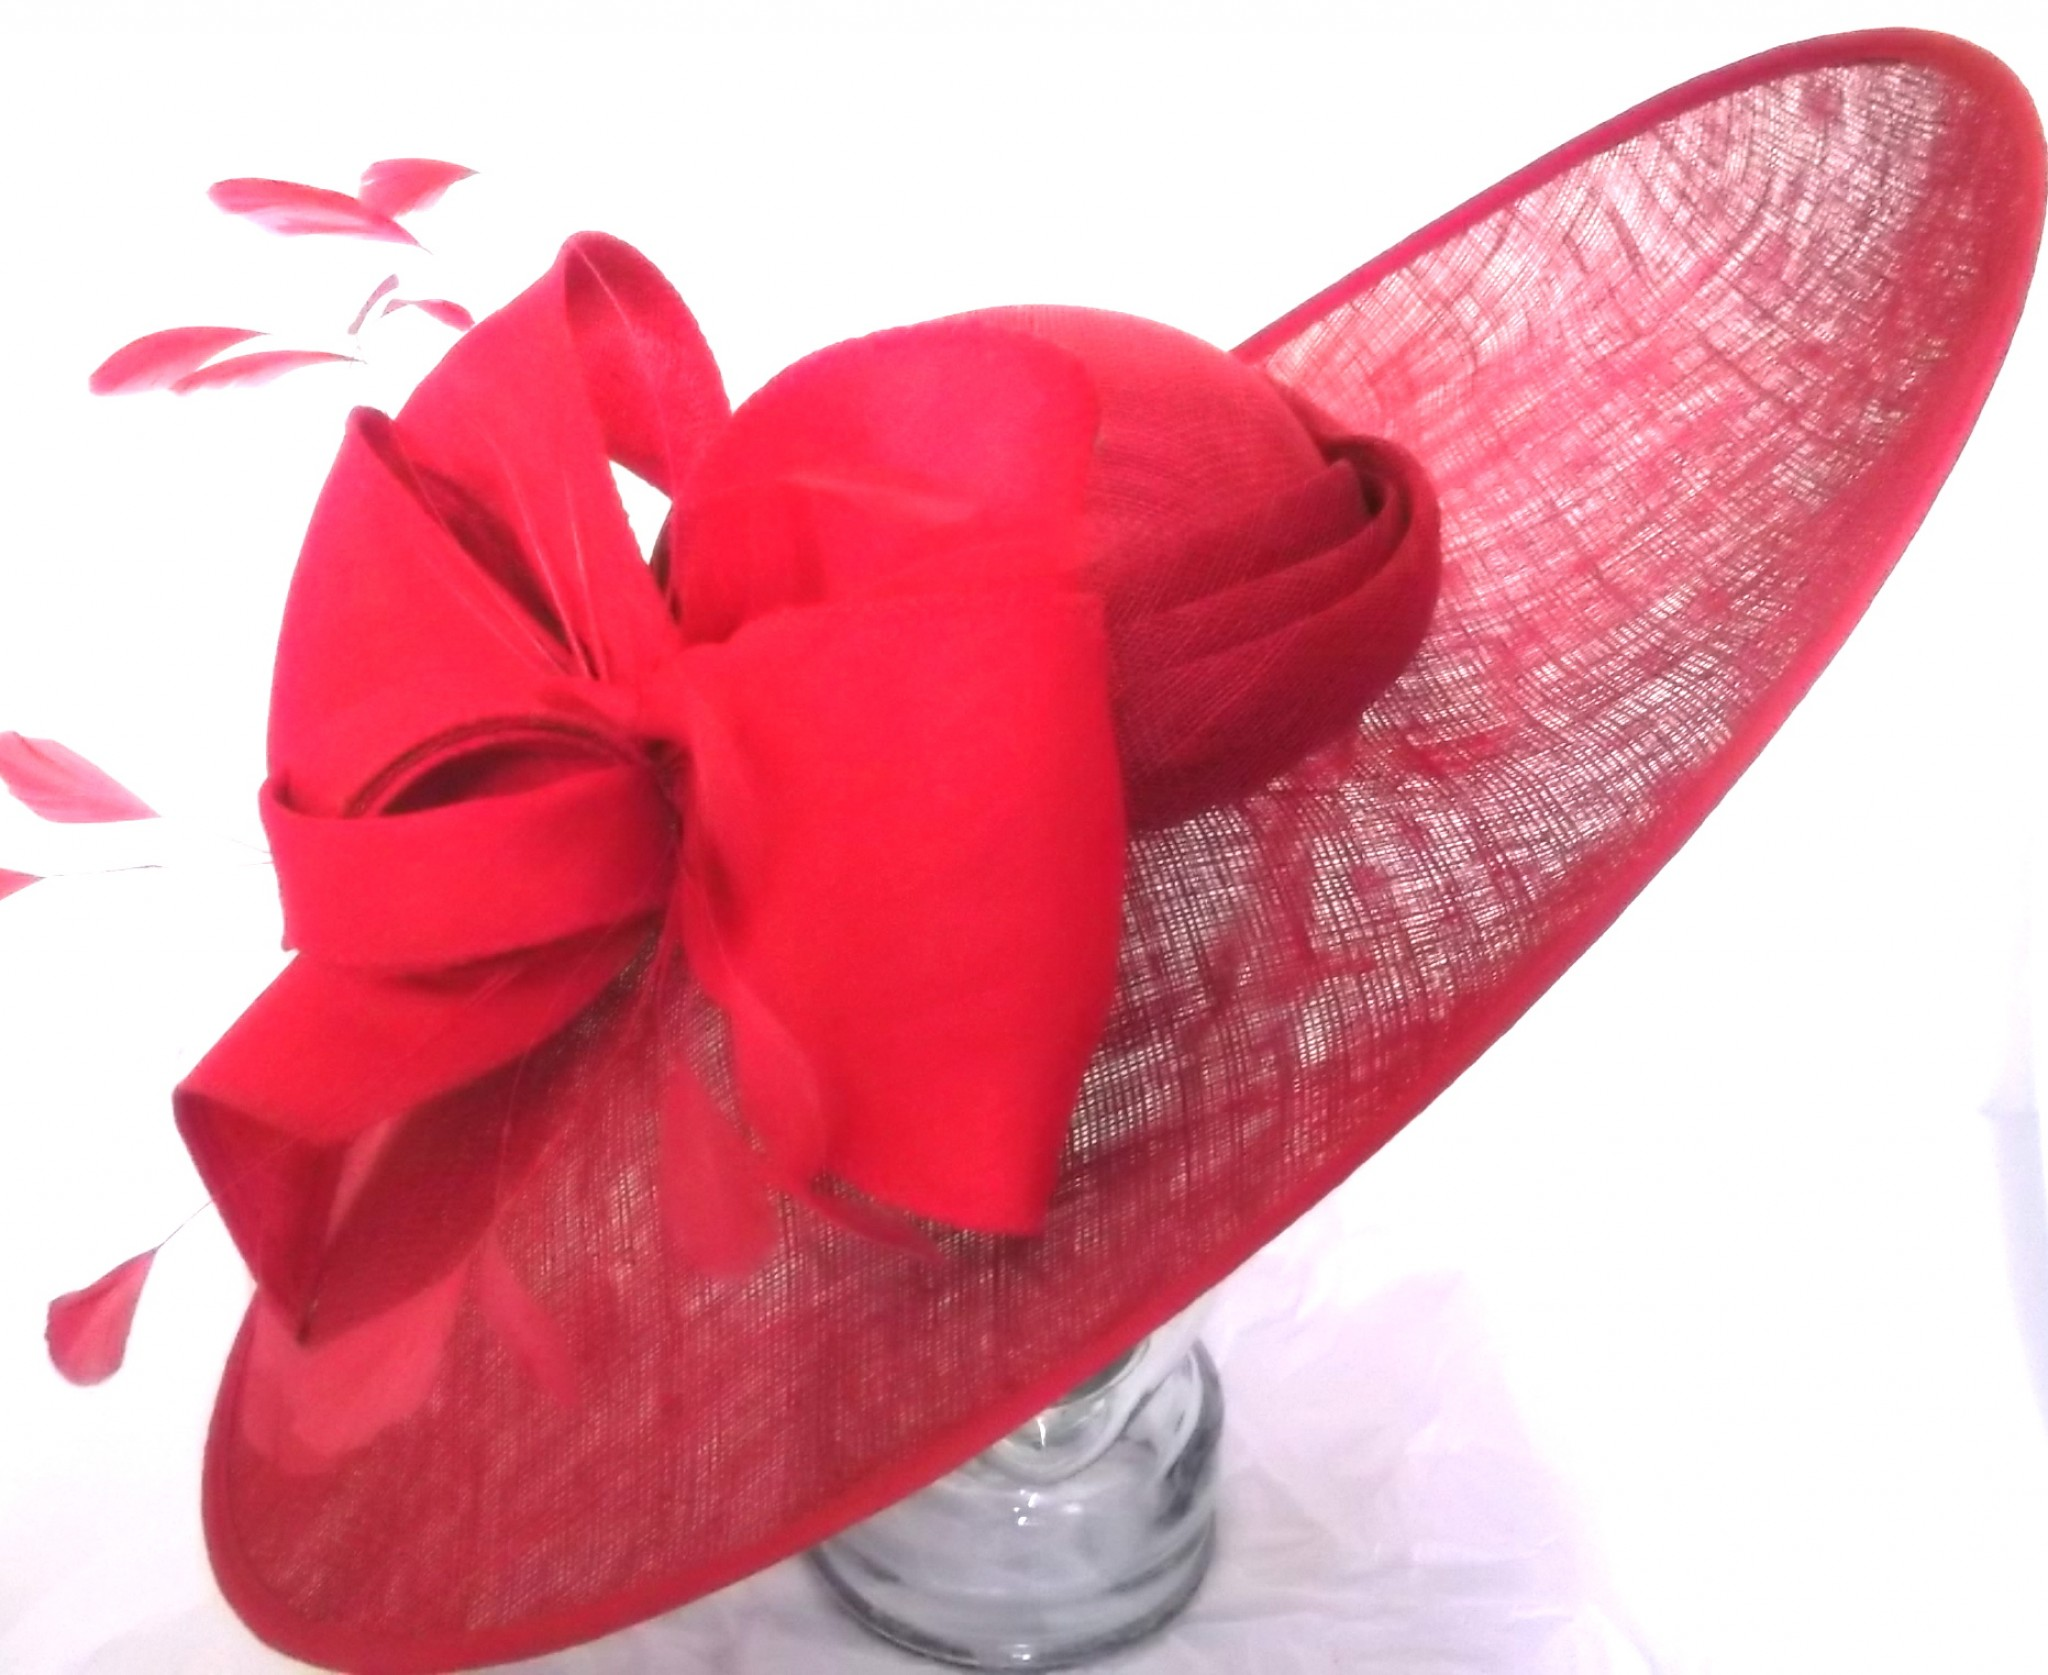 6b1f71535c002 Snoxell Gwyther - Occasion Hat - Occasion Hats | Wedding Hats